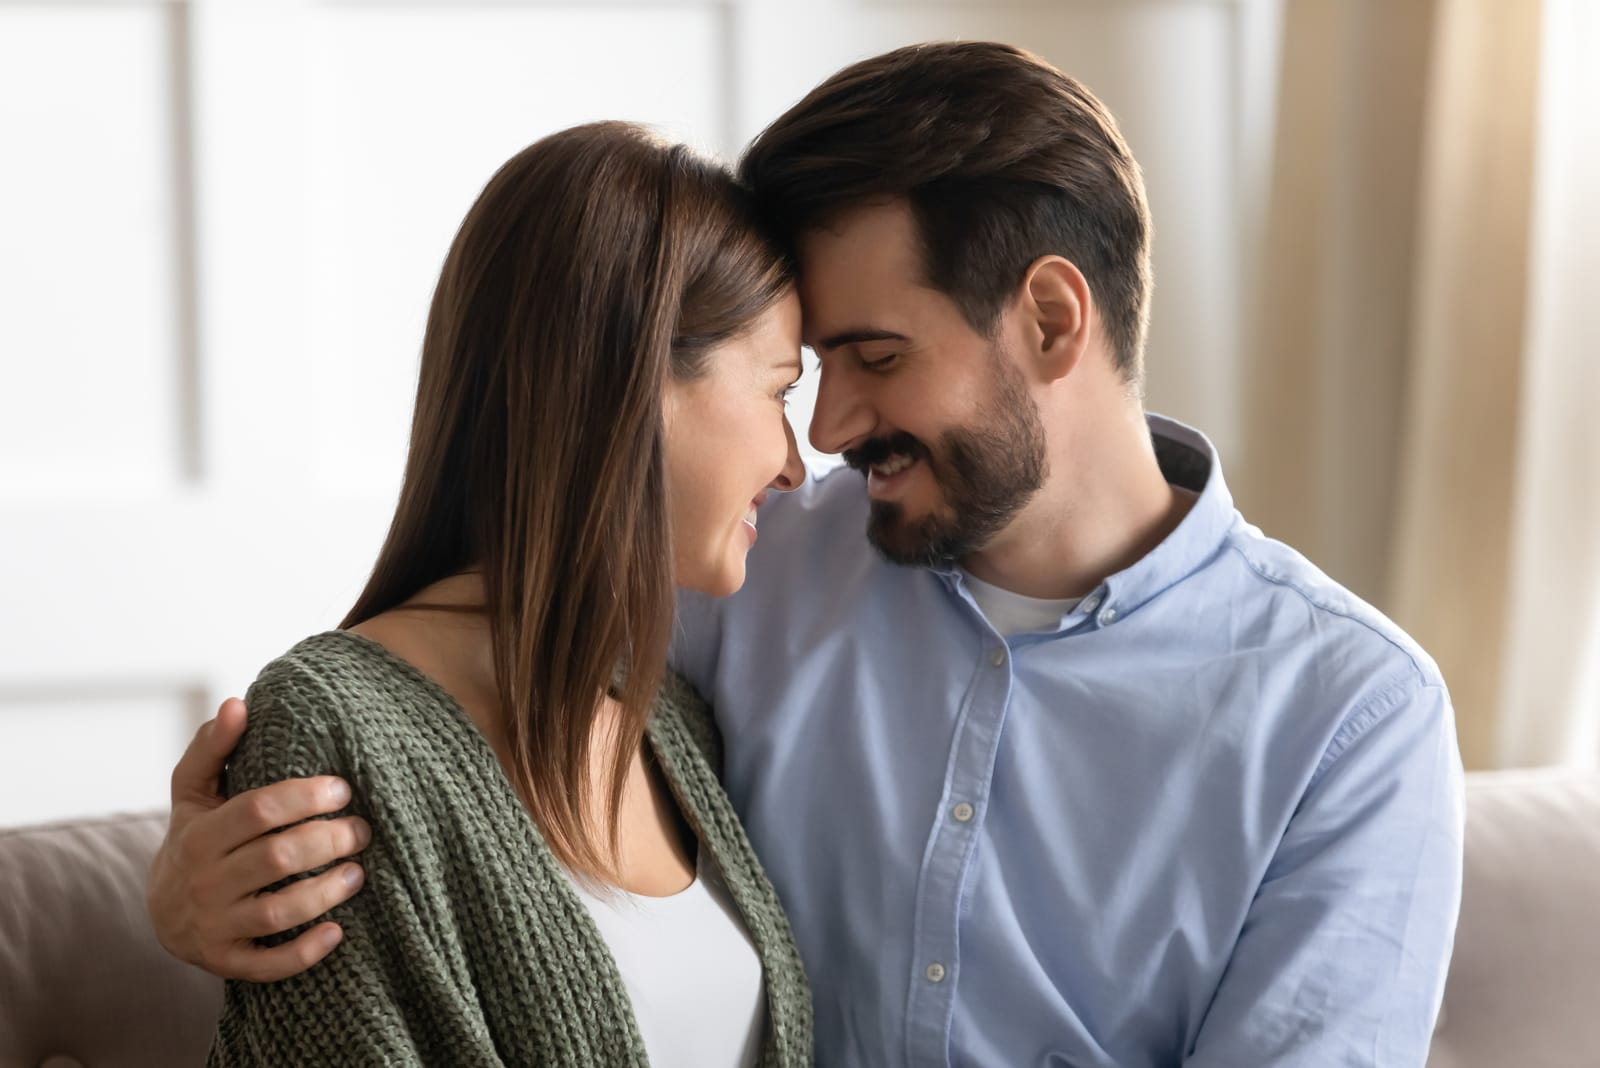 affectionate young man cuddling attractive smiling woman